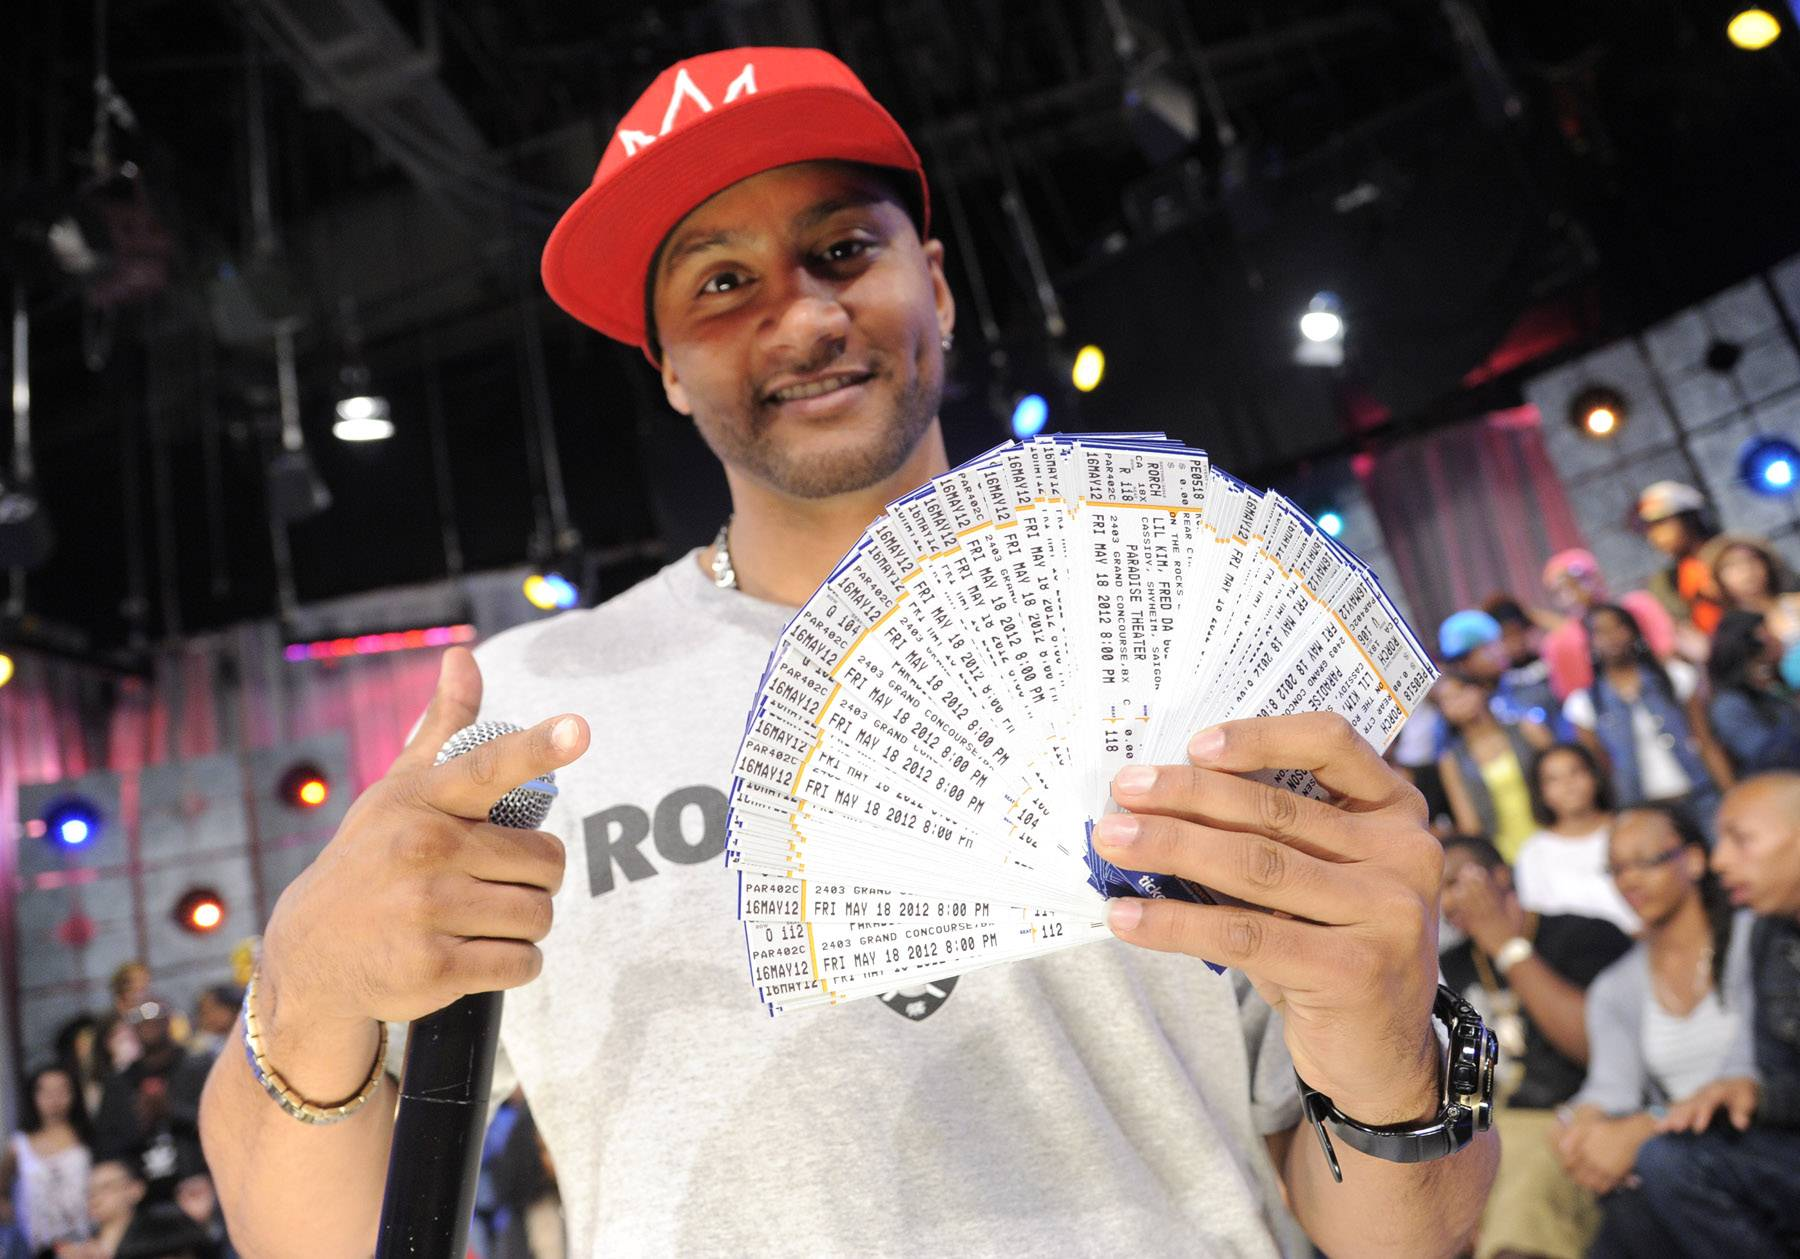 He has lots of tickets - DJ Lyve with free tickets for a Lil Kim concert to be given the livest audience member at 106 & Park, May 16, 2012. (Photo: John Ricard / BET)